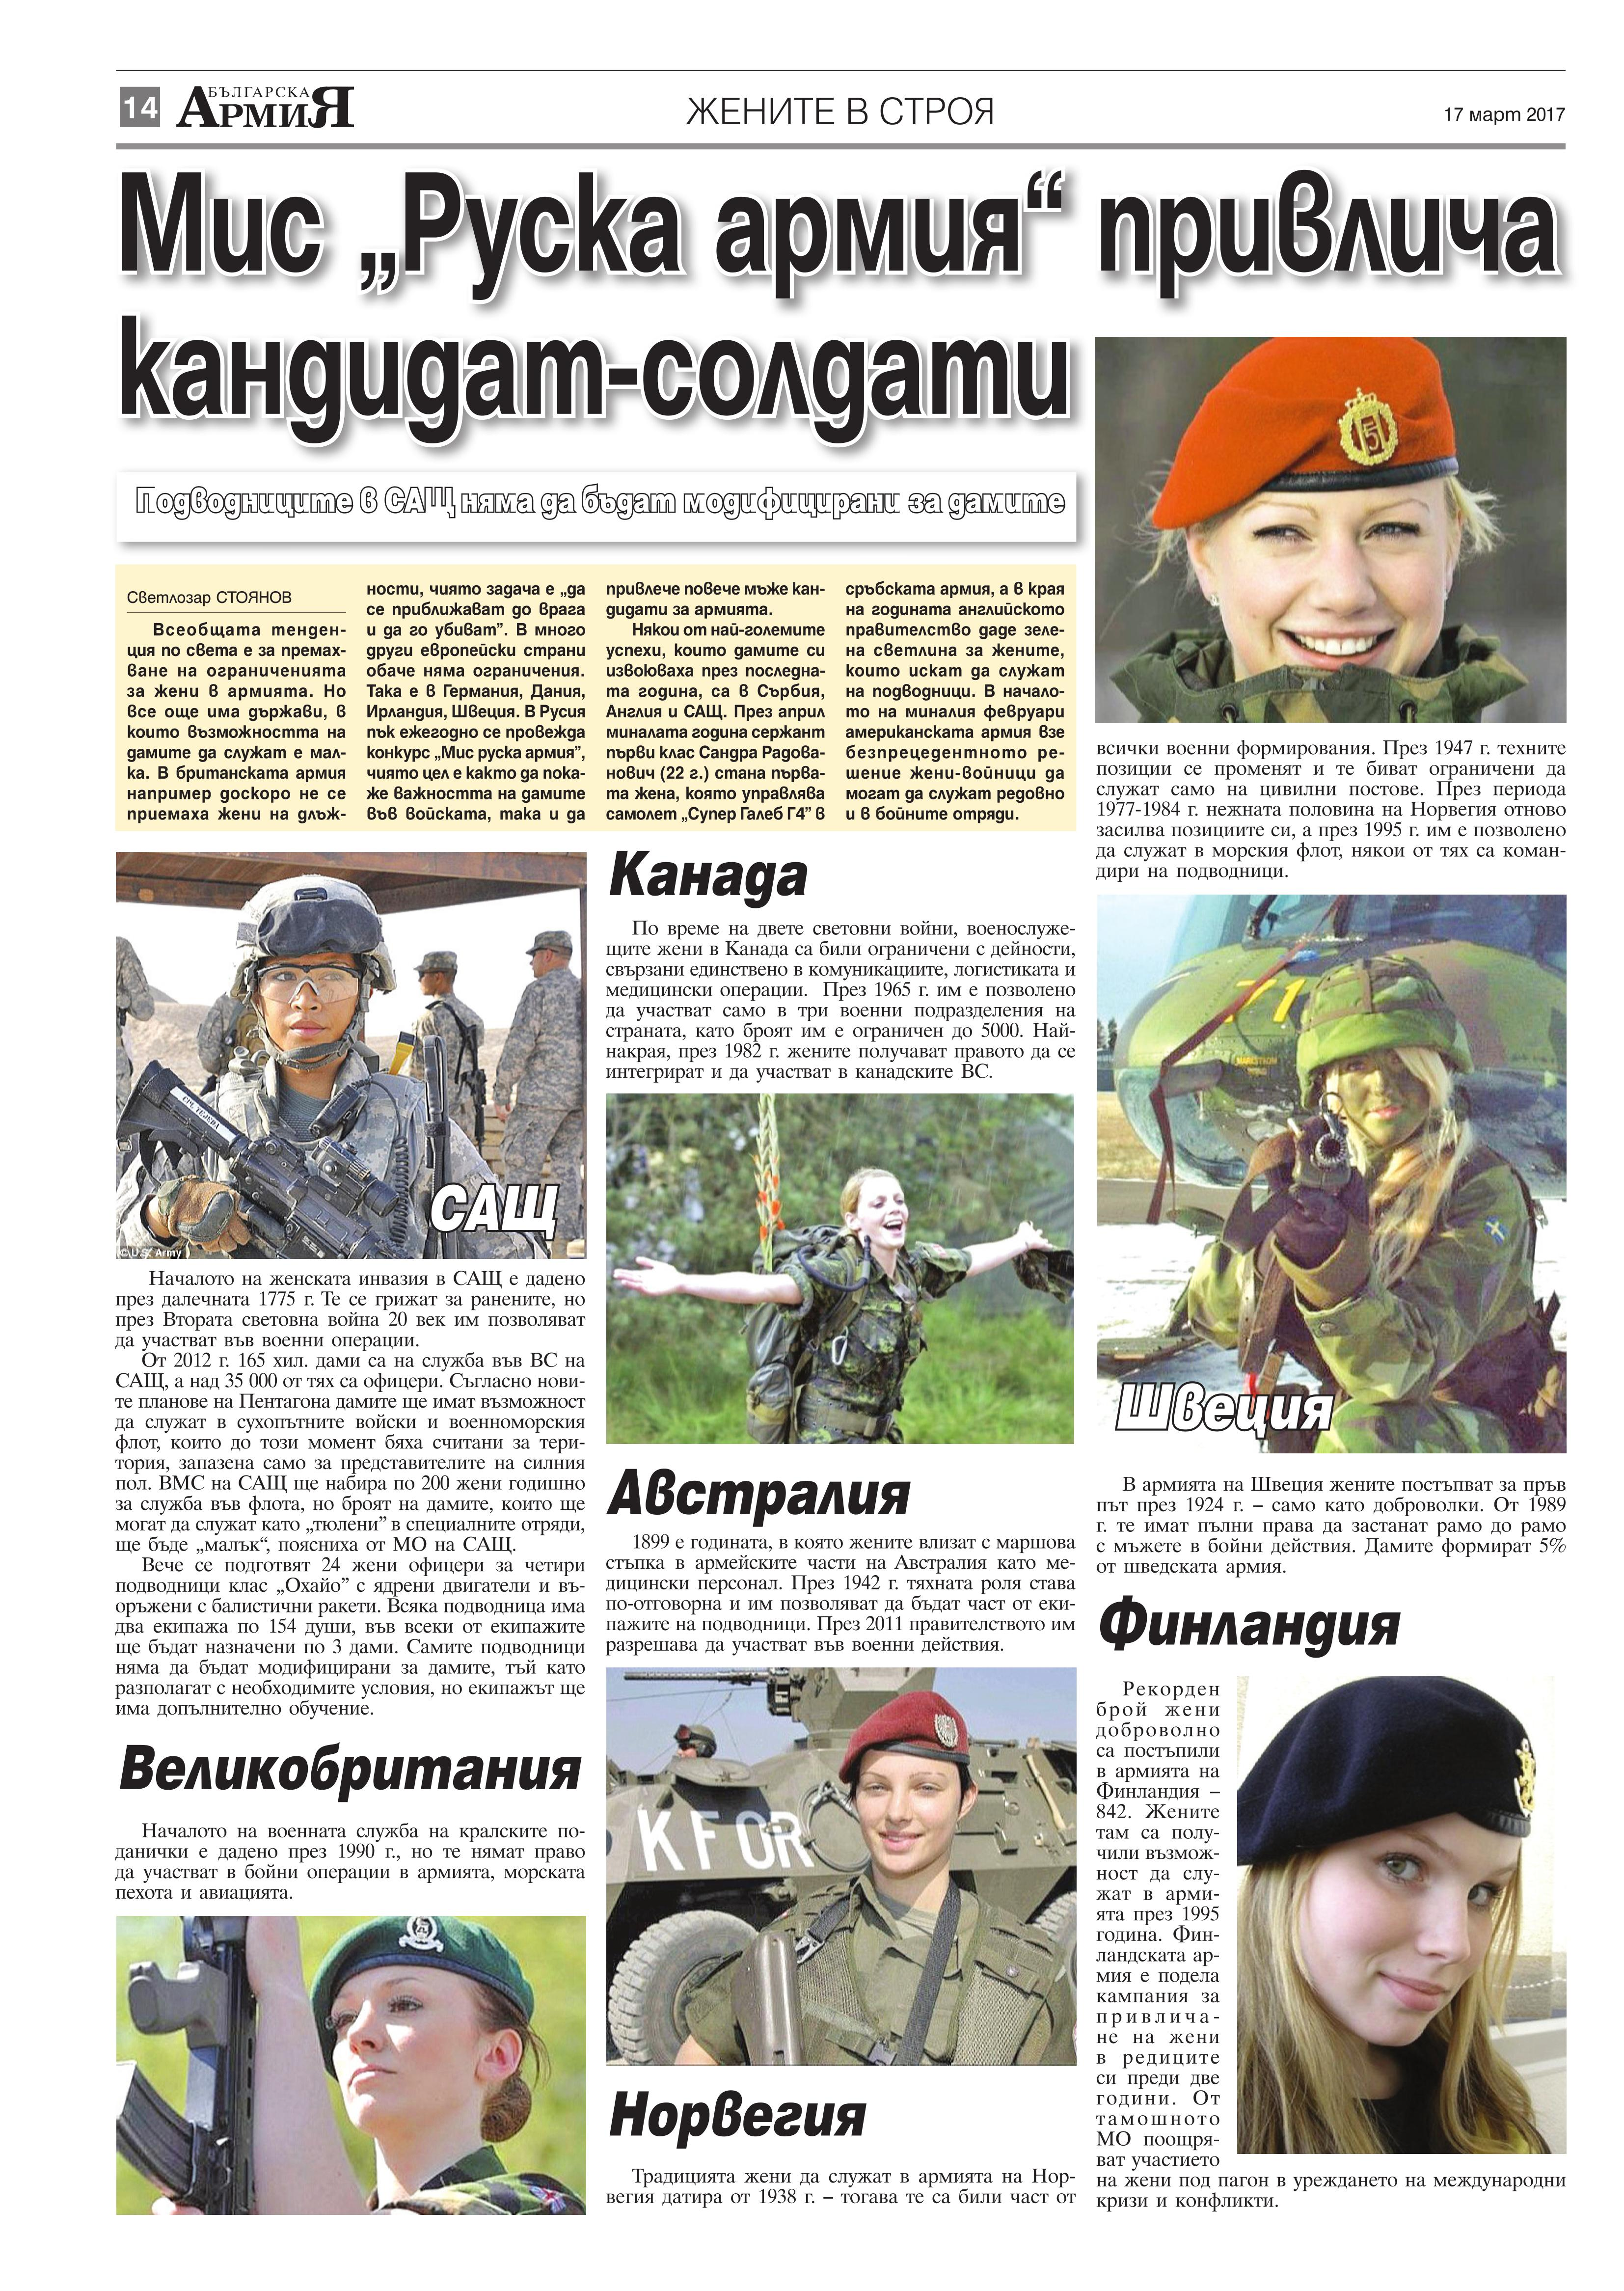 https://www.armymedia.bg/wp-content/uploads/2015/06/14.page1_-17.jpg